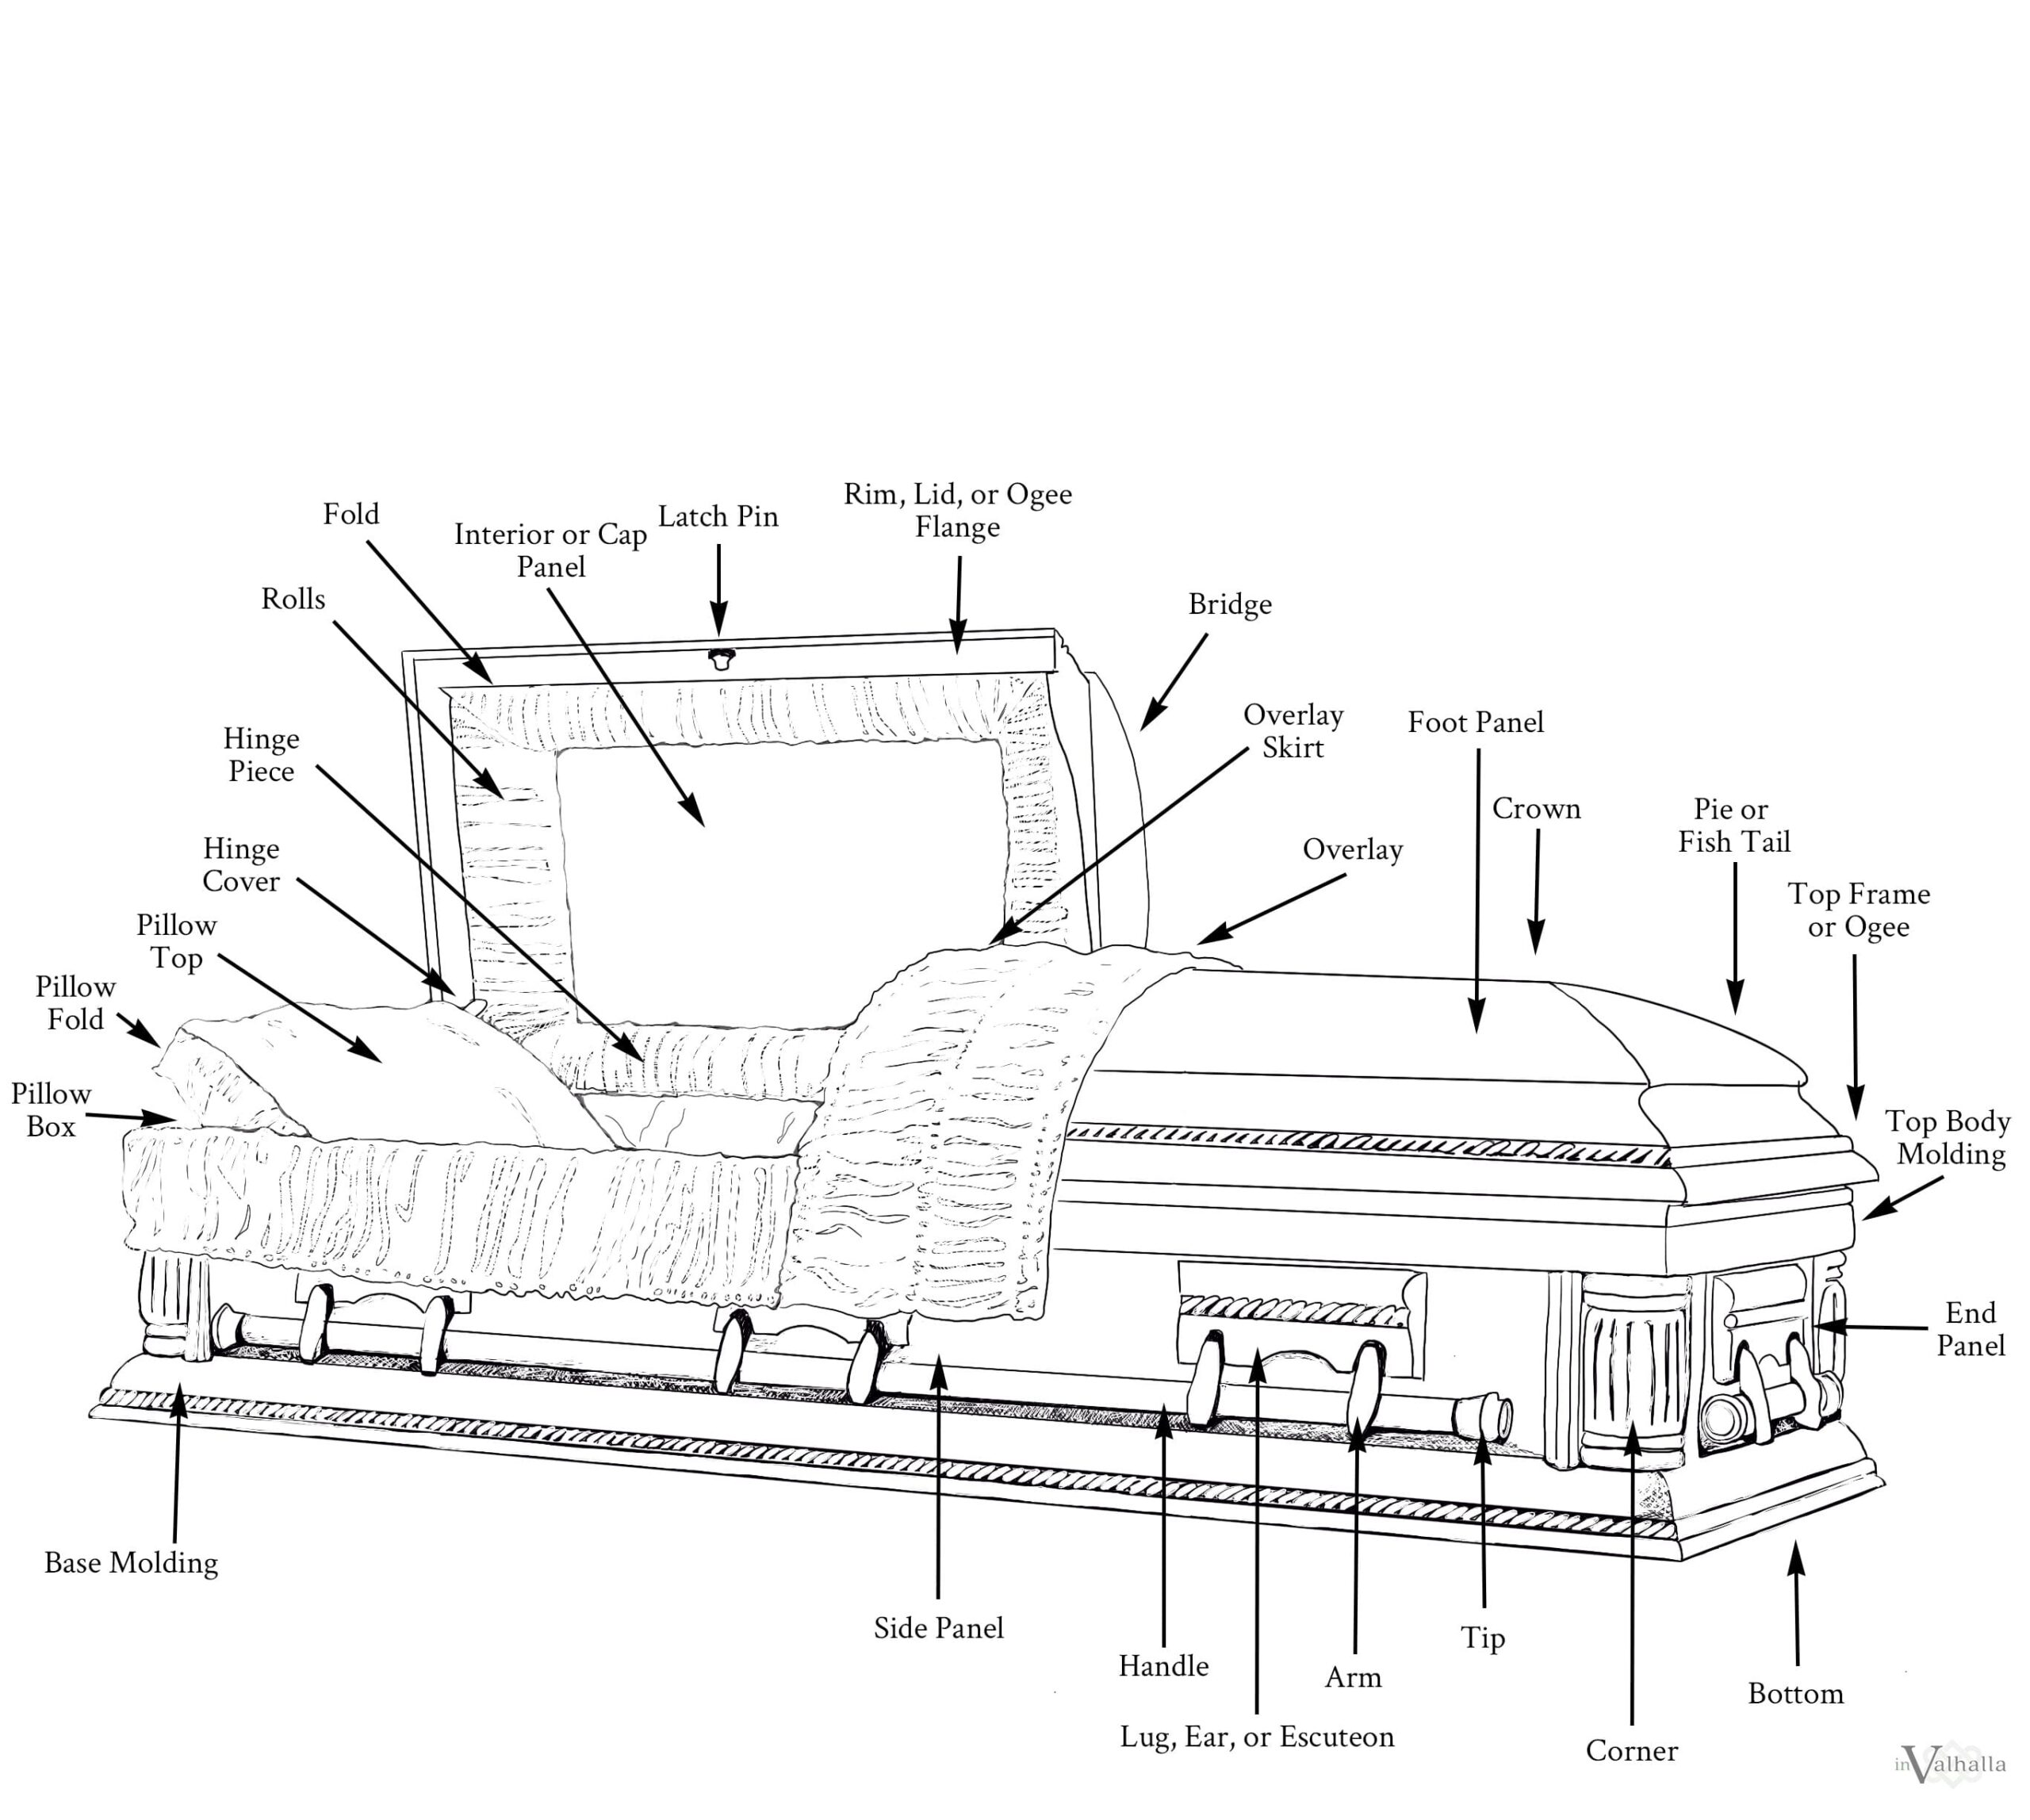 Casket Parts Labeled - Infographic